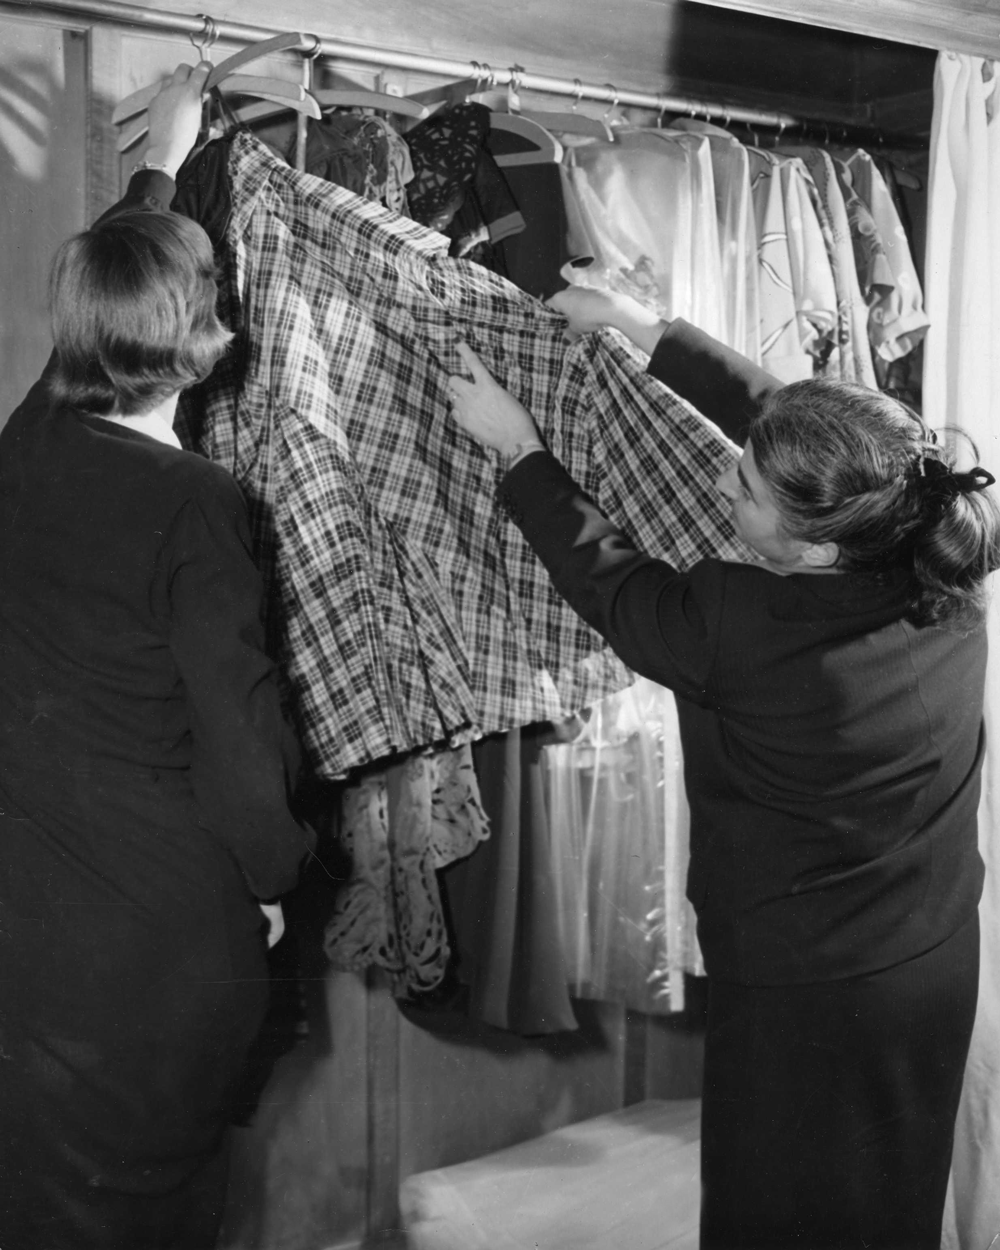 Germana Marucelli showing a customer her dresses at her atelier in Corso Venezia 18, Milan © Interfoto | Archivio Germana Marucelli